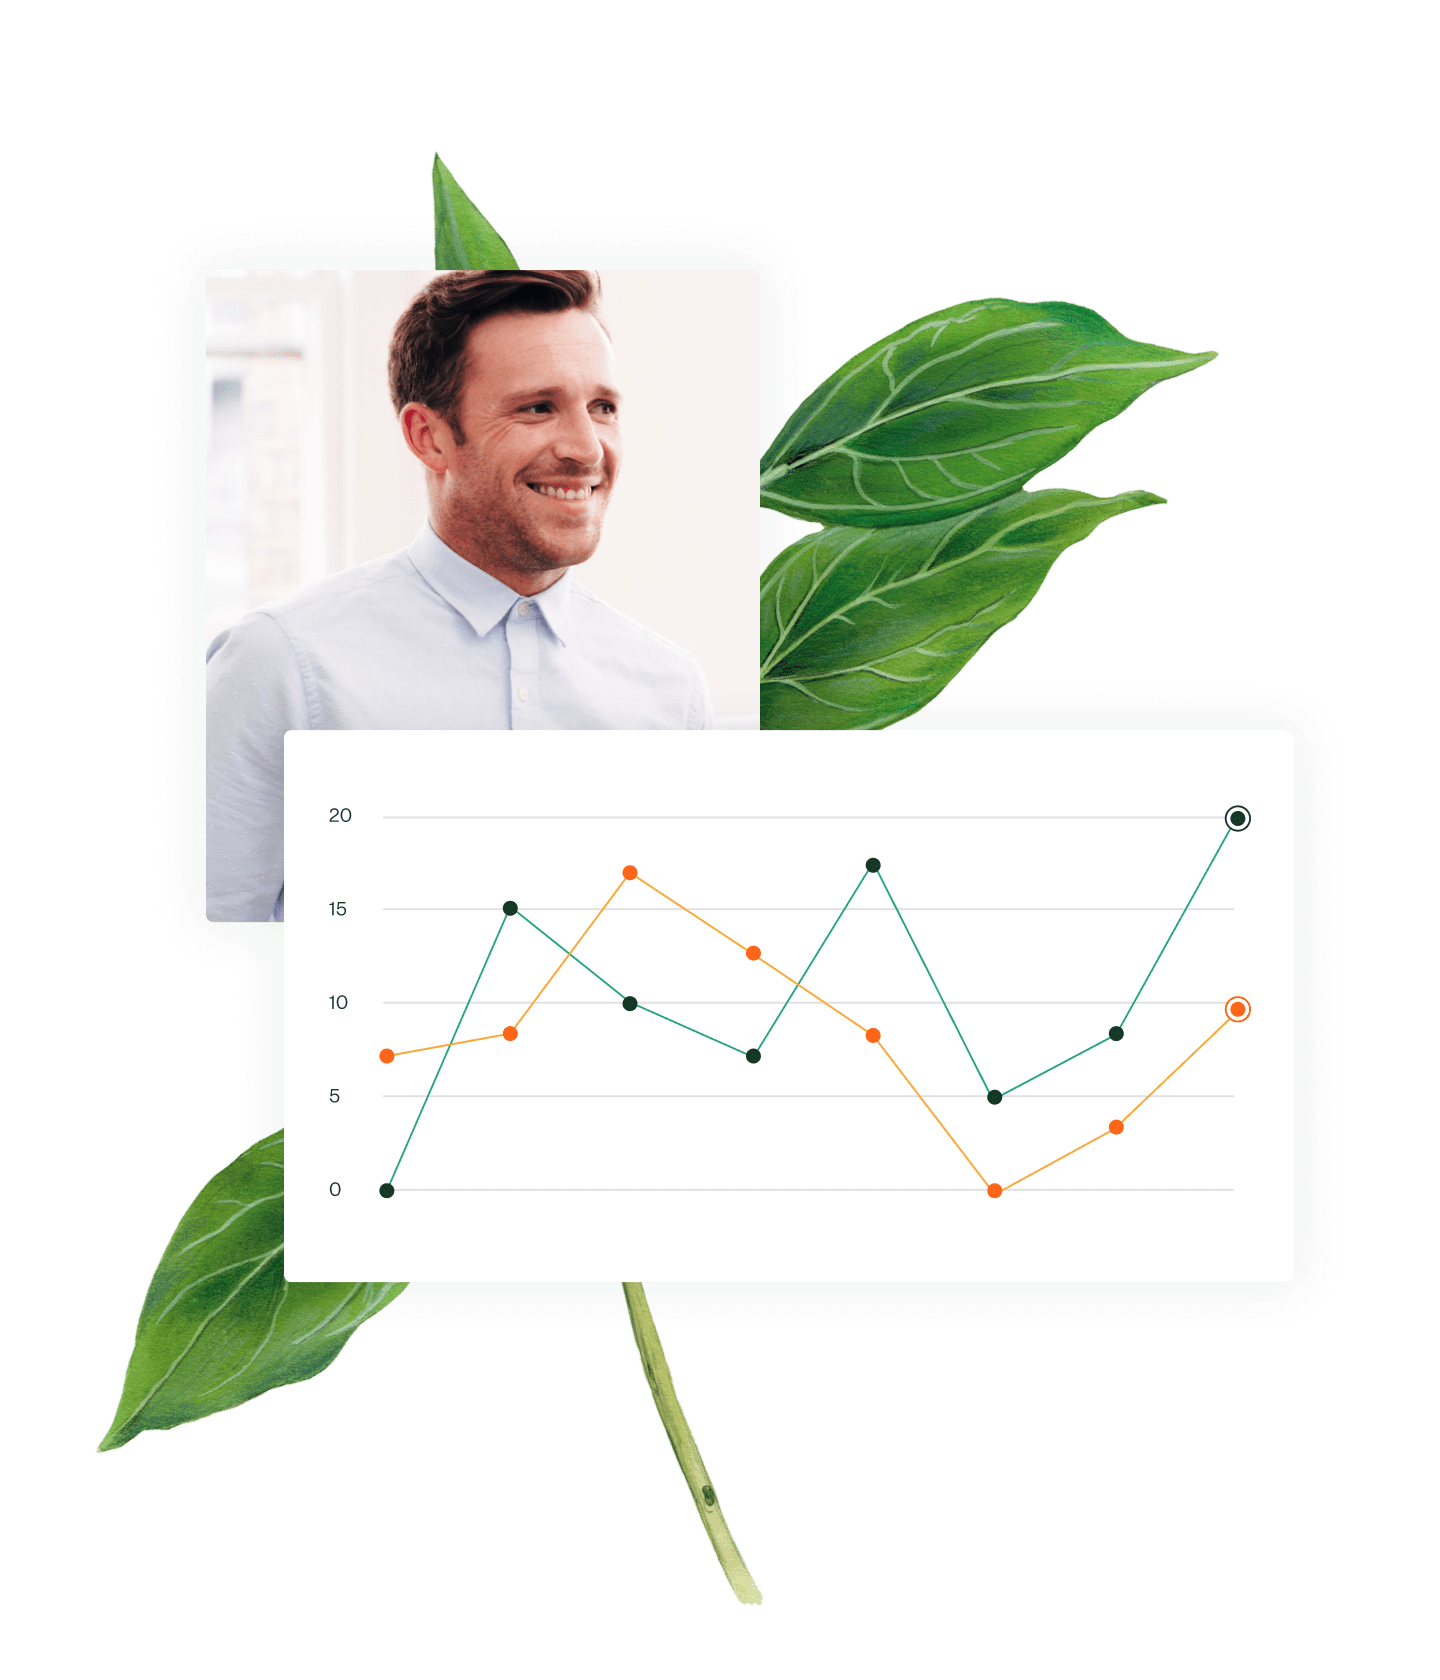 Photo of man and image of line graph